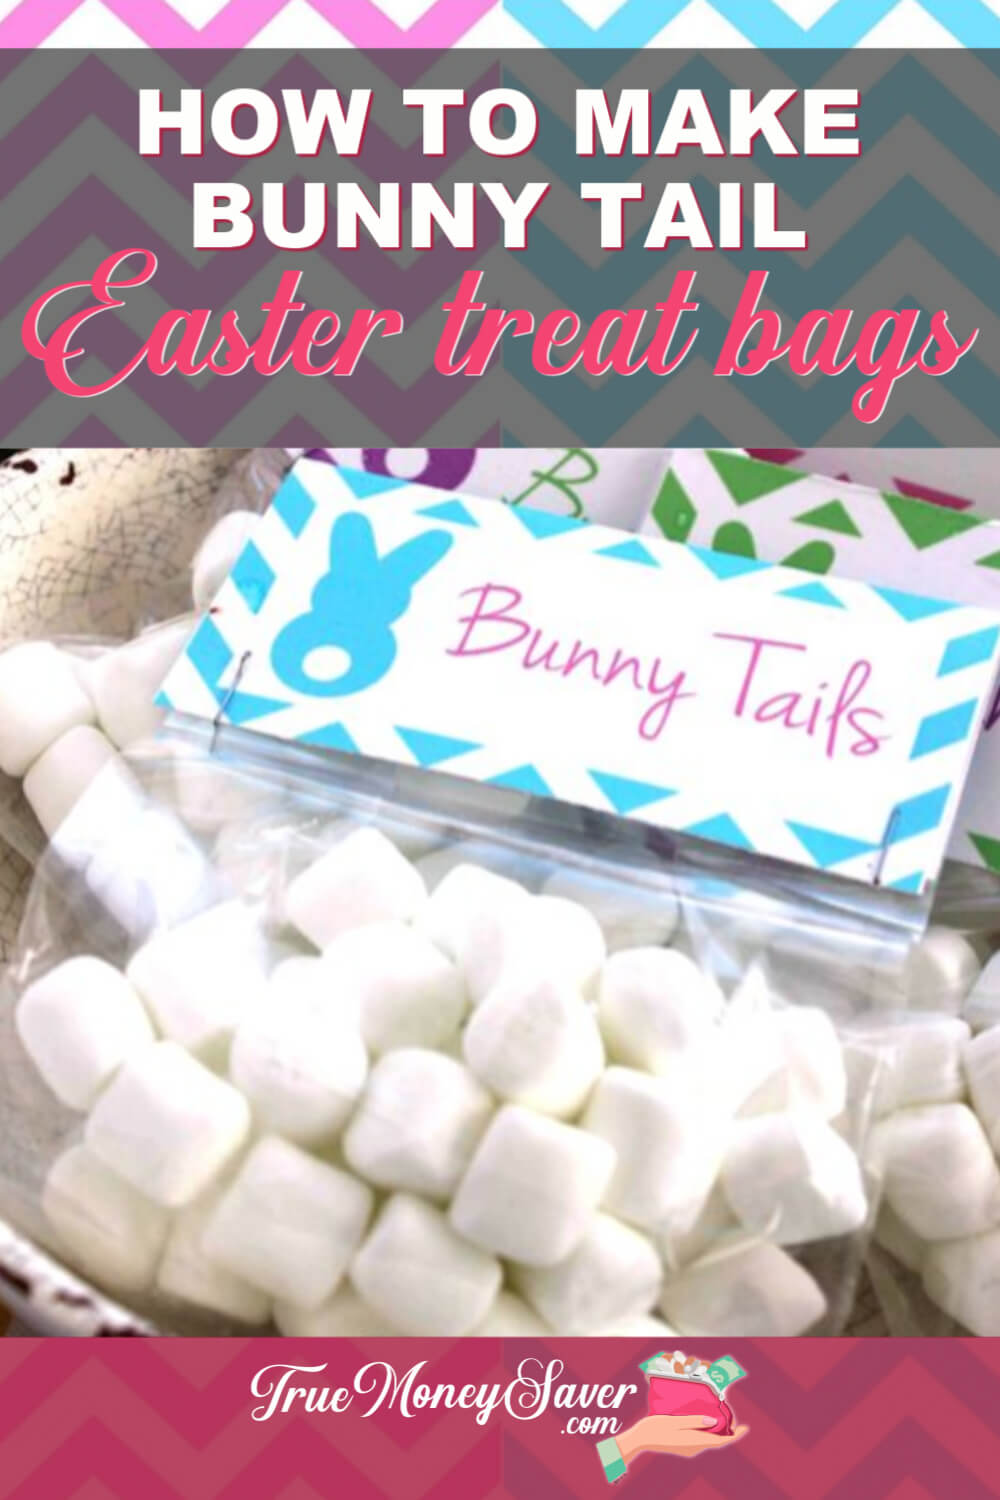 How To Make Bunny Tail Easter Treat Bags (With FREE Printable)